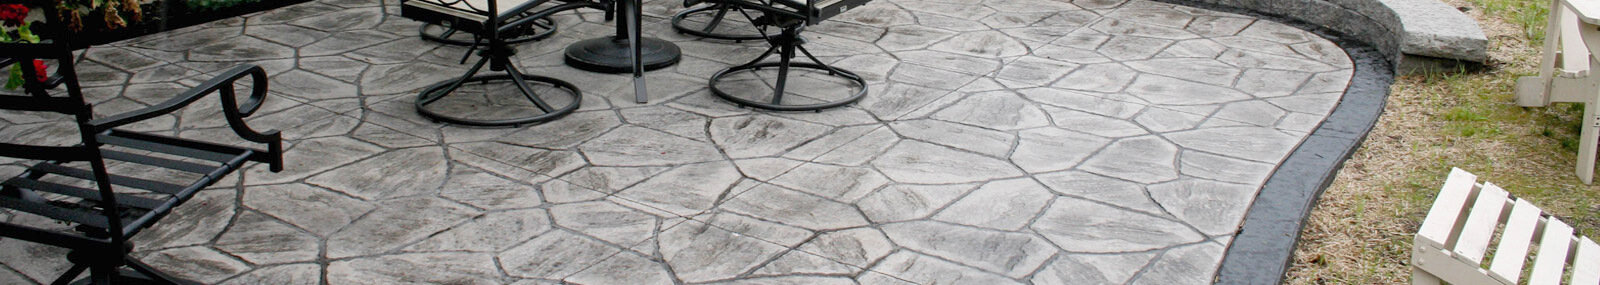 Patio Contractors Fairport, NY